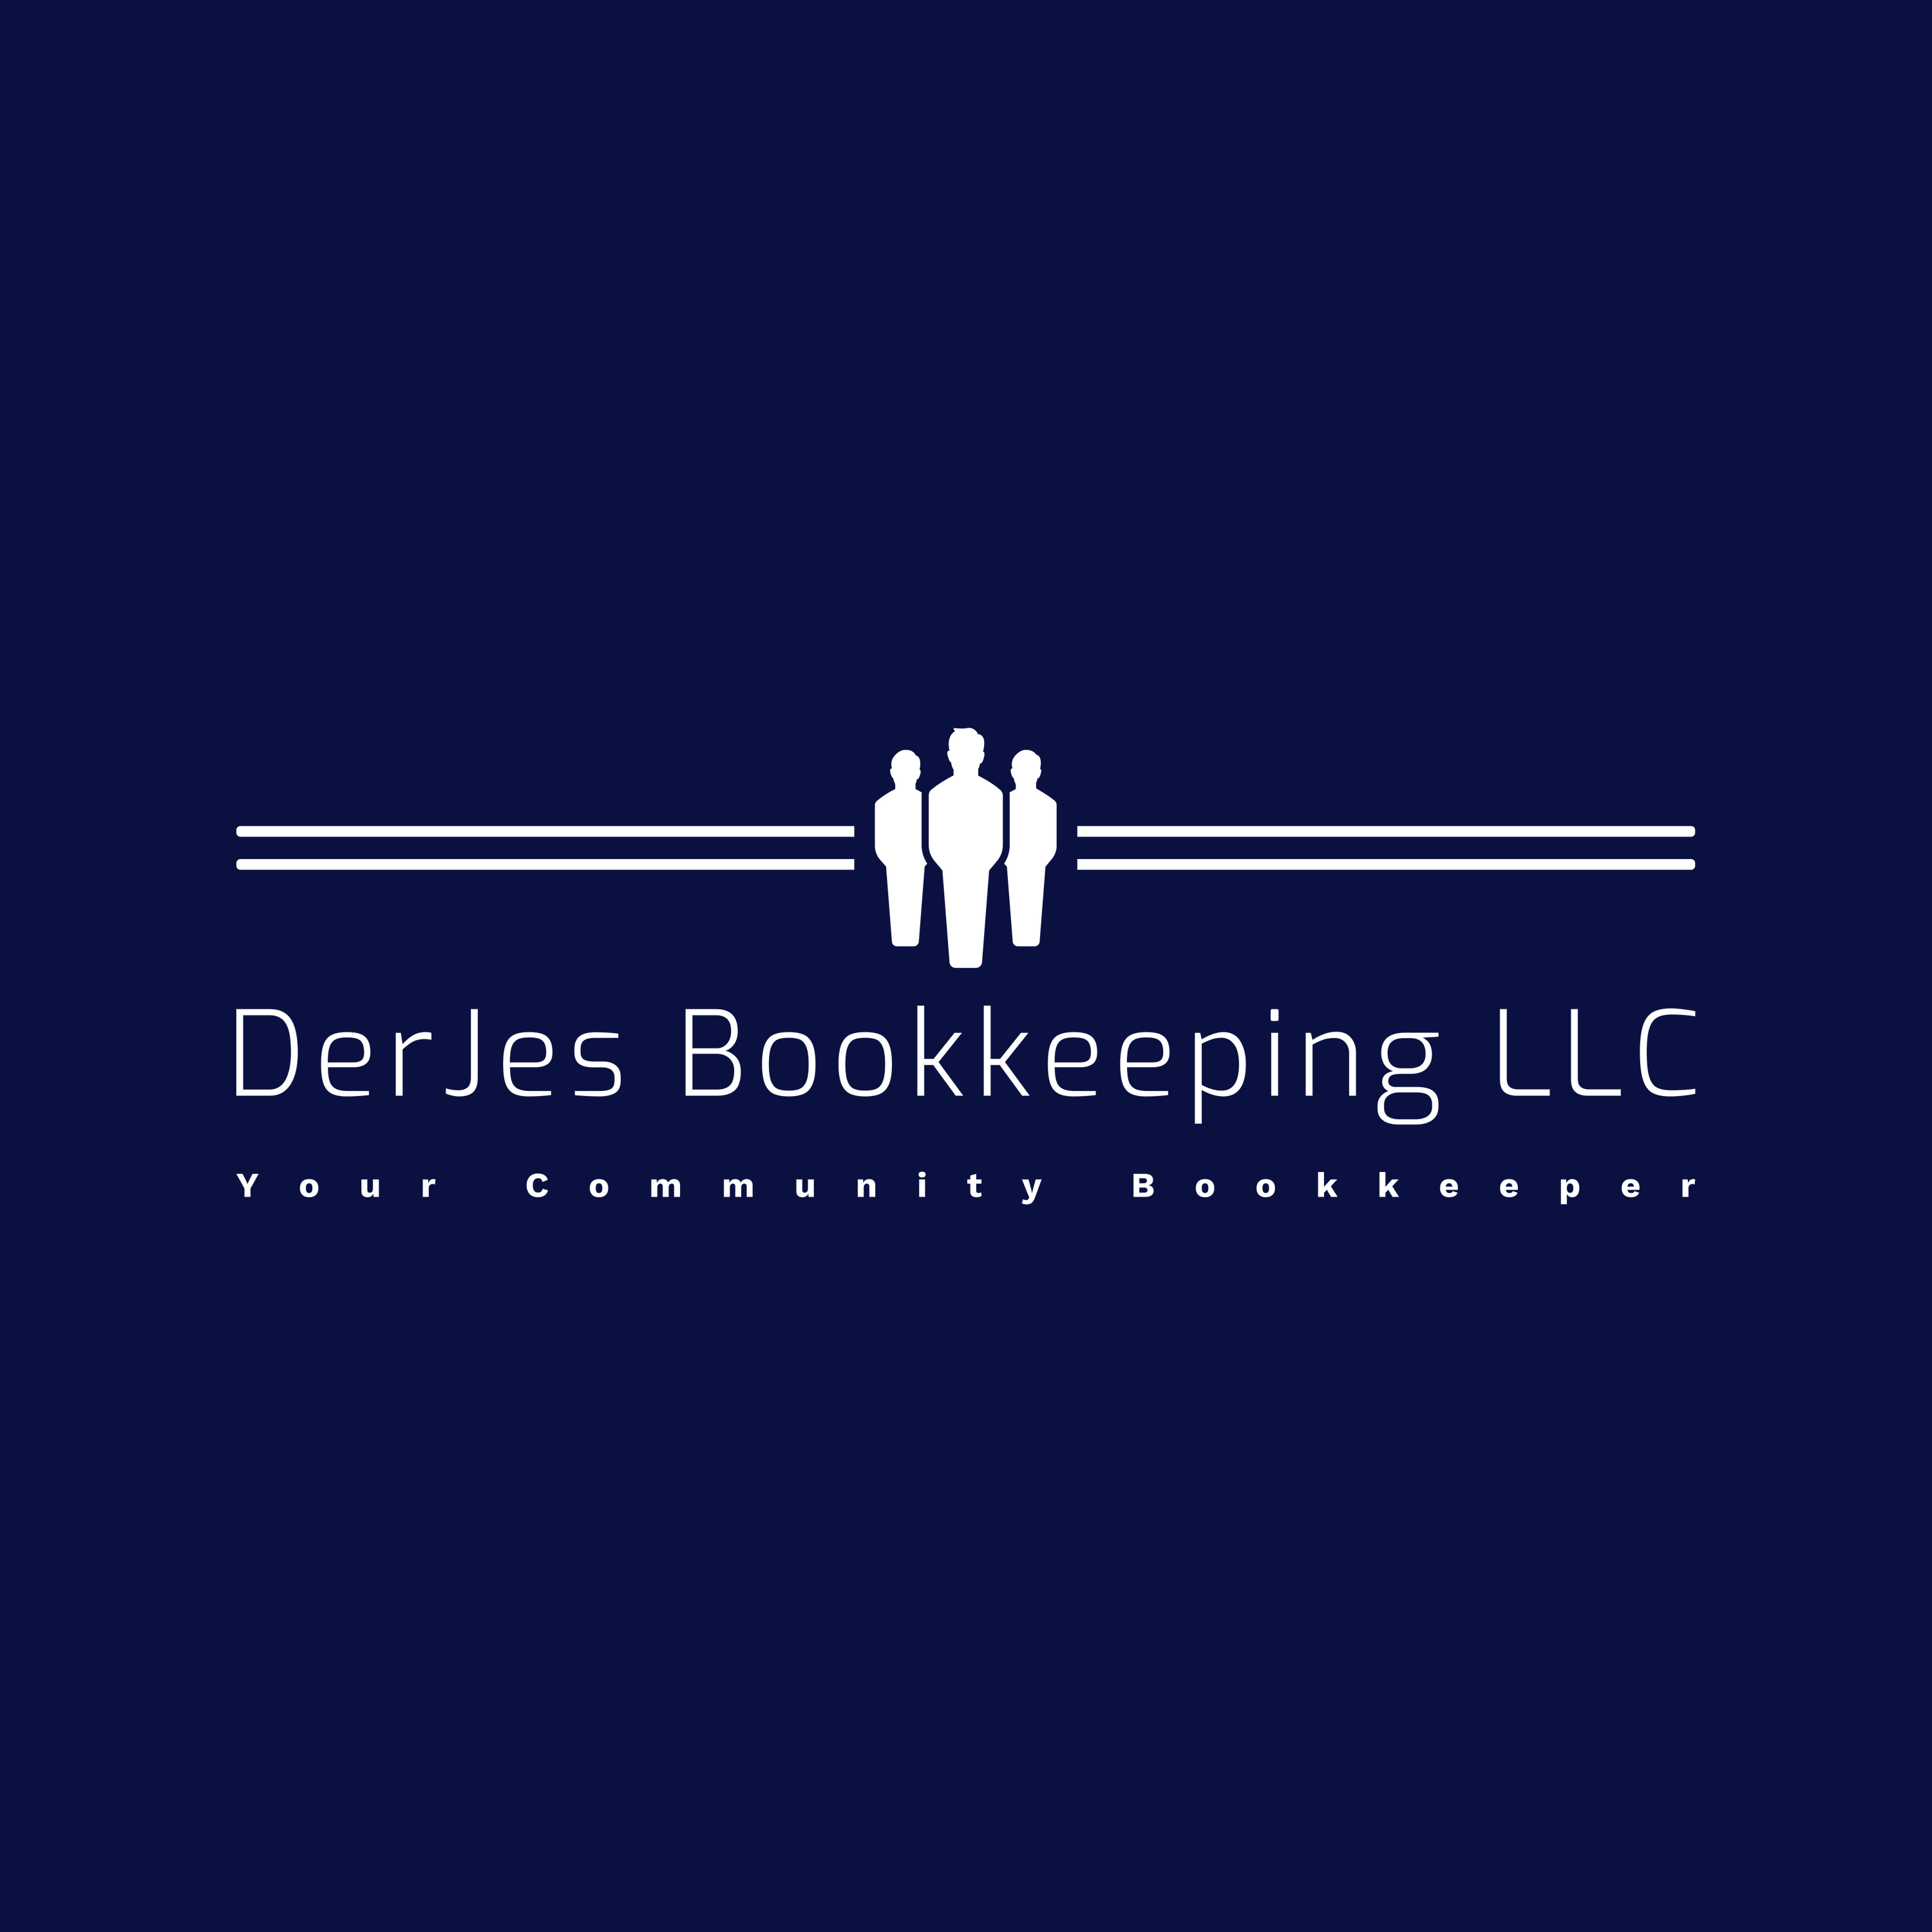 DerJes Bookkeeping LLC